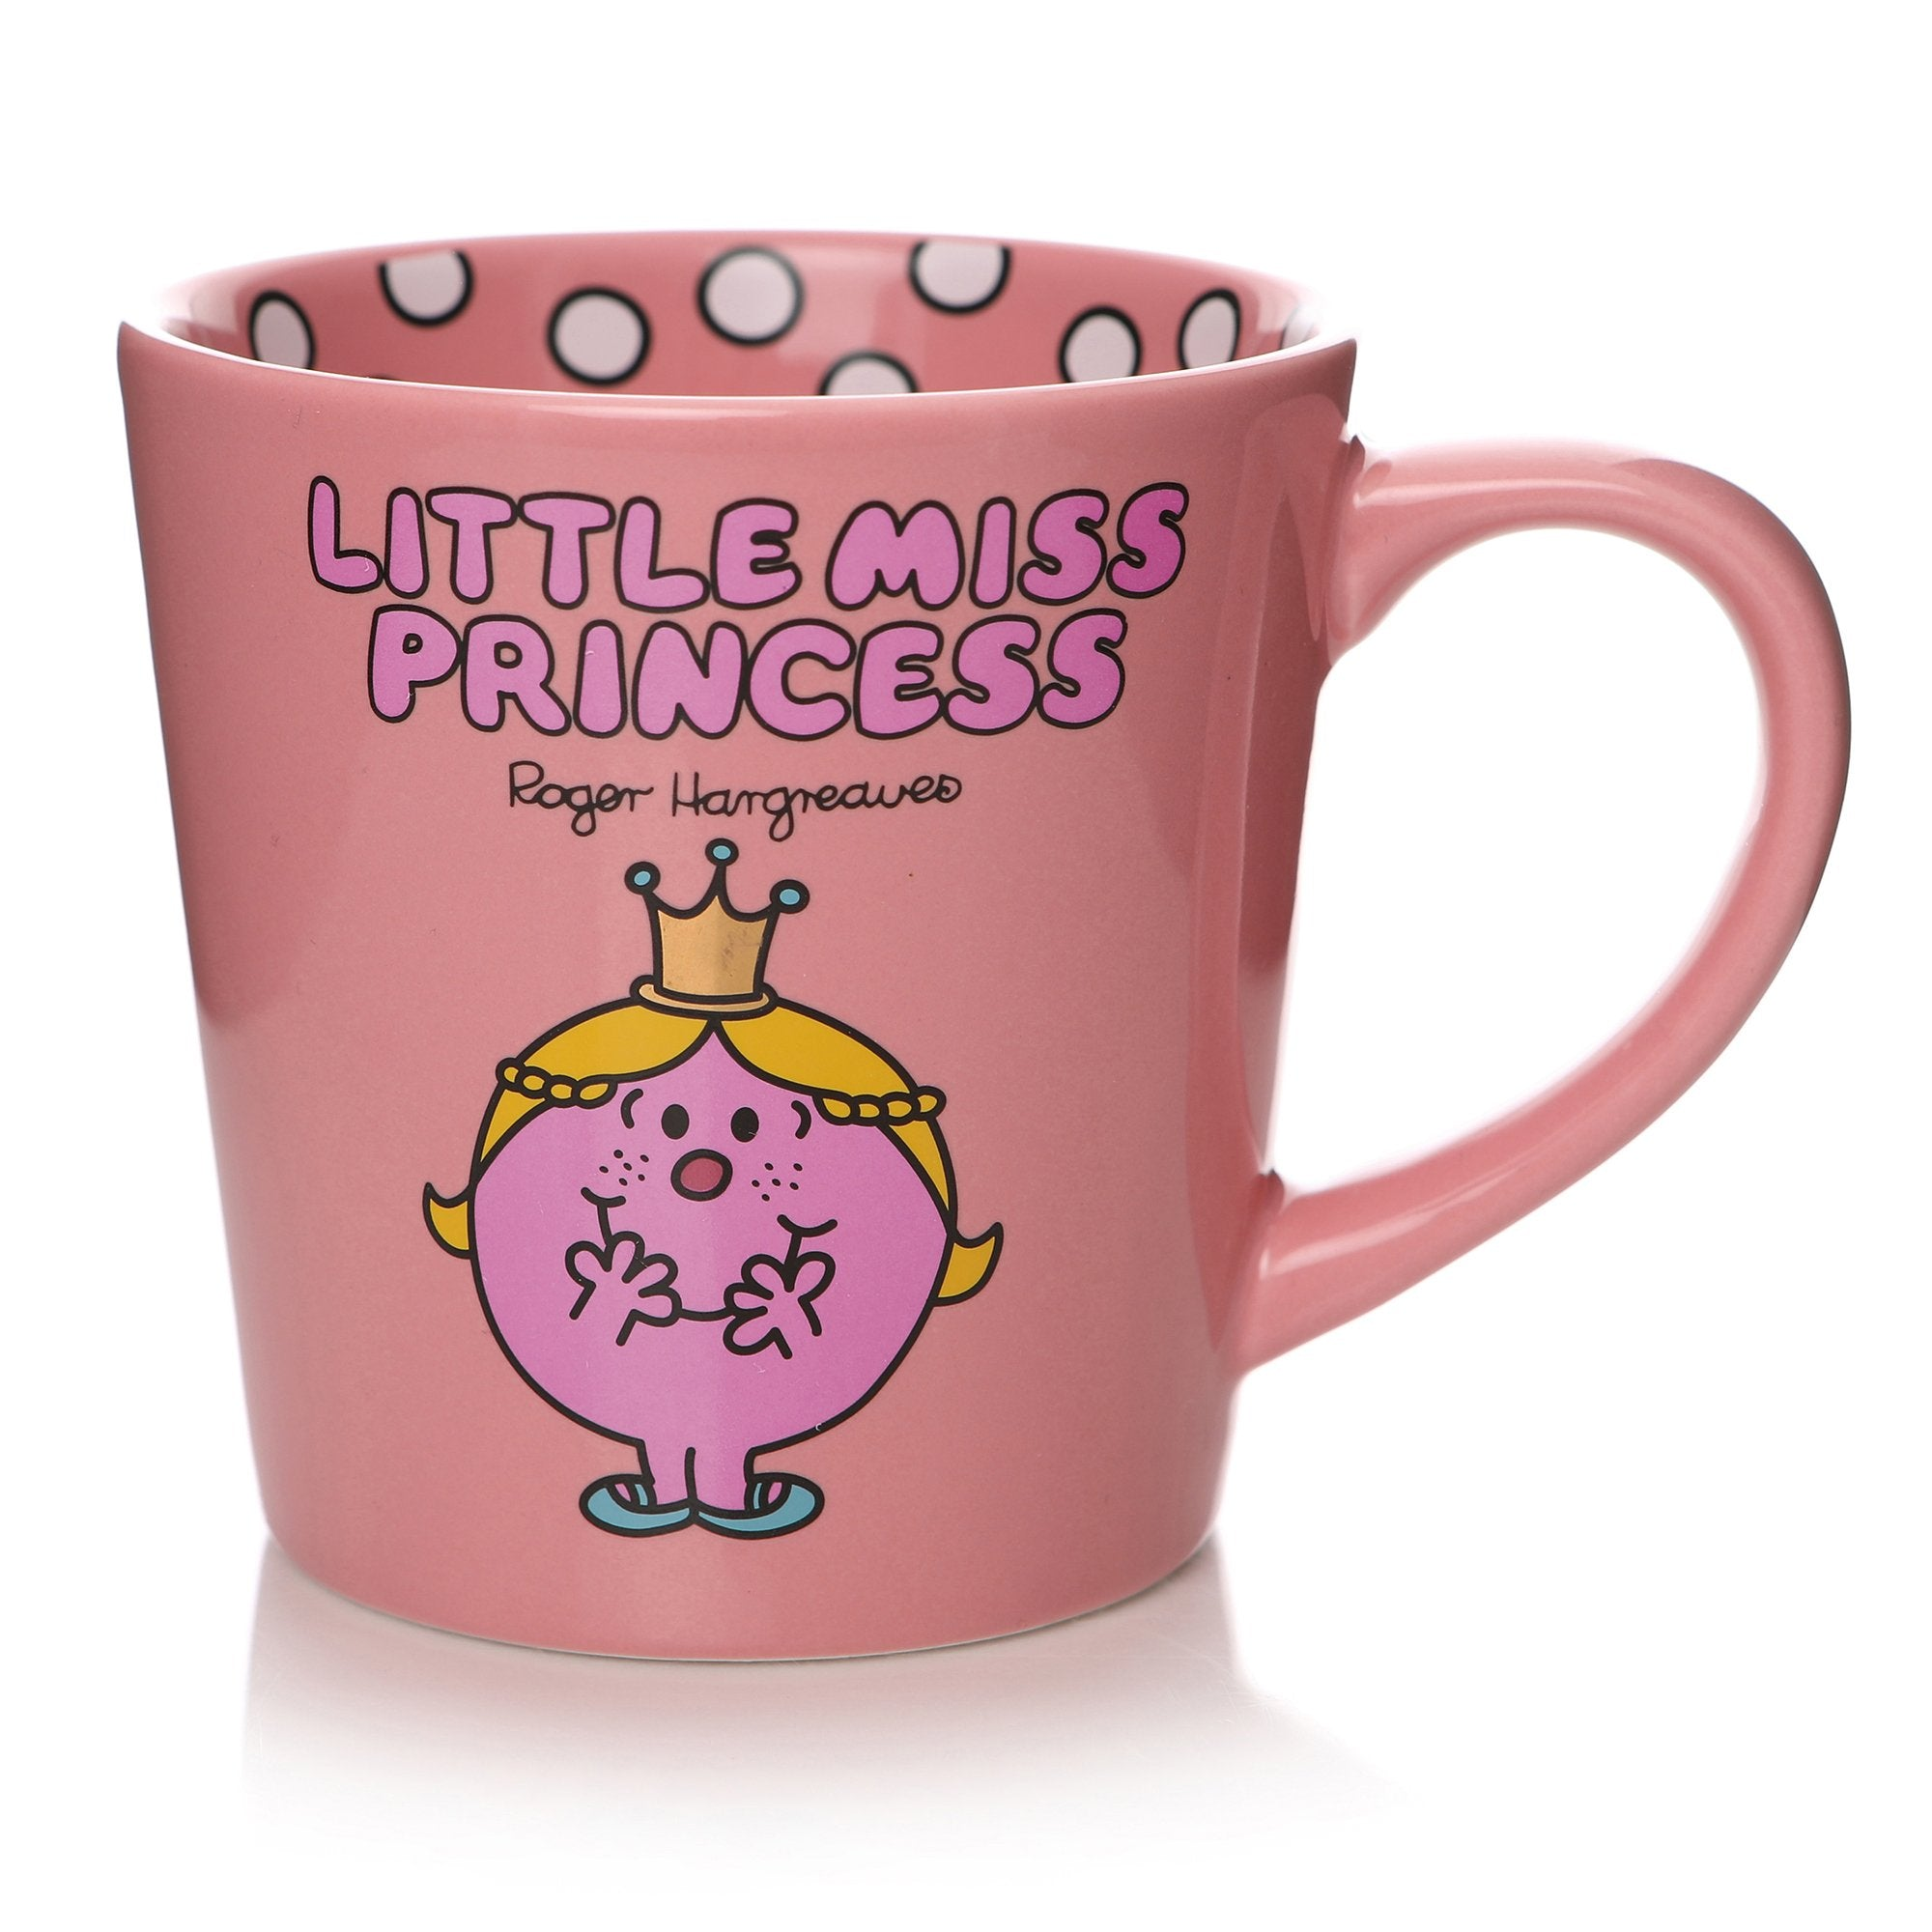 Mr. Men Little Miss Mug - Little Miss Princess - Half Moon Bay US